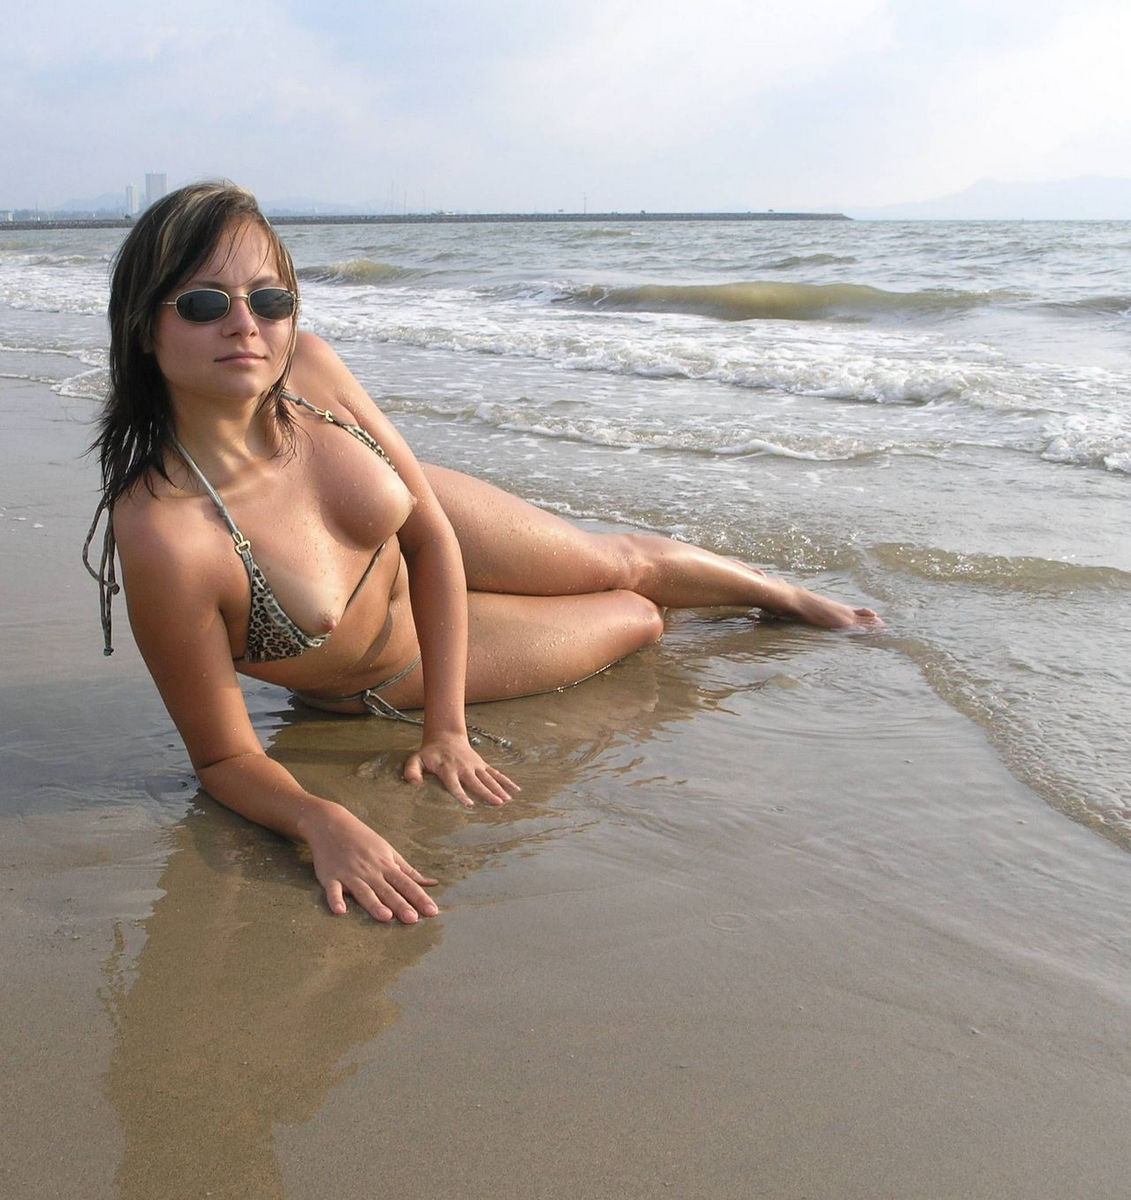 Sexy boobs at the beach